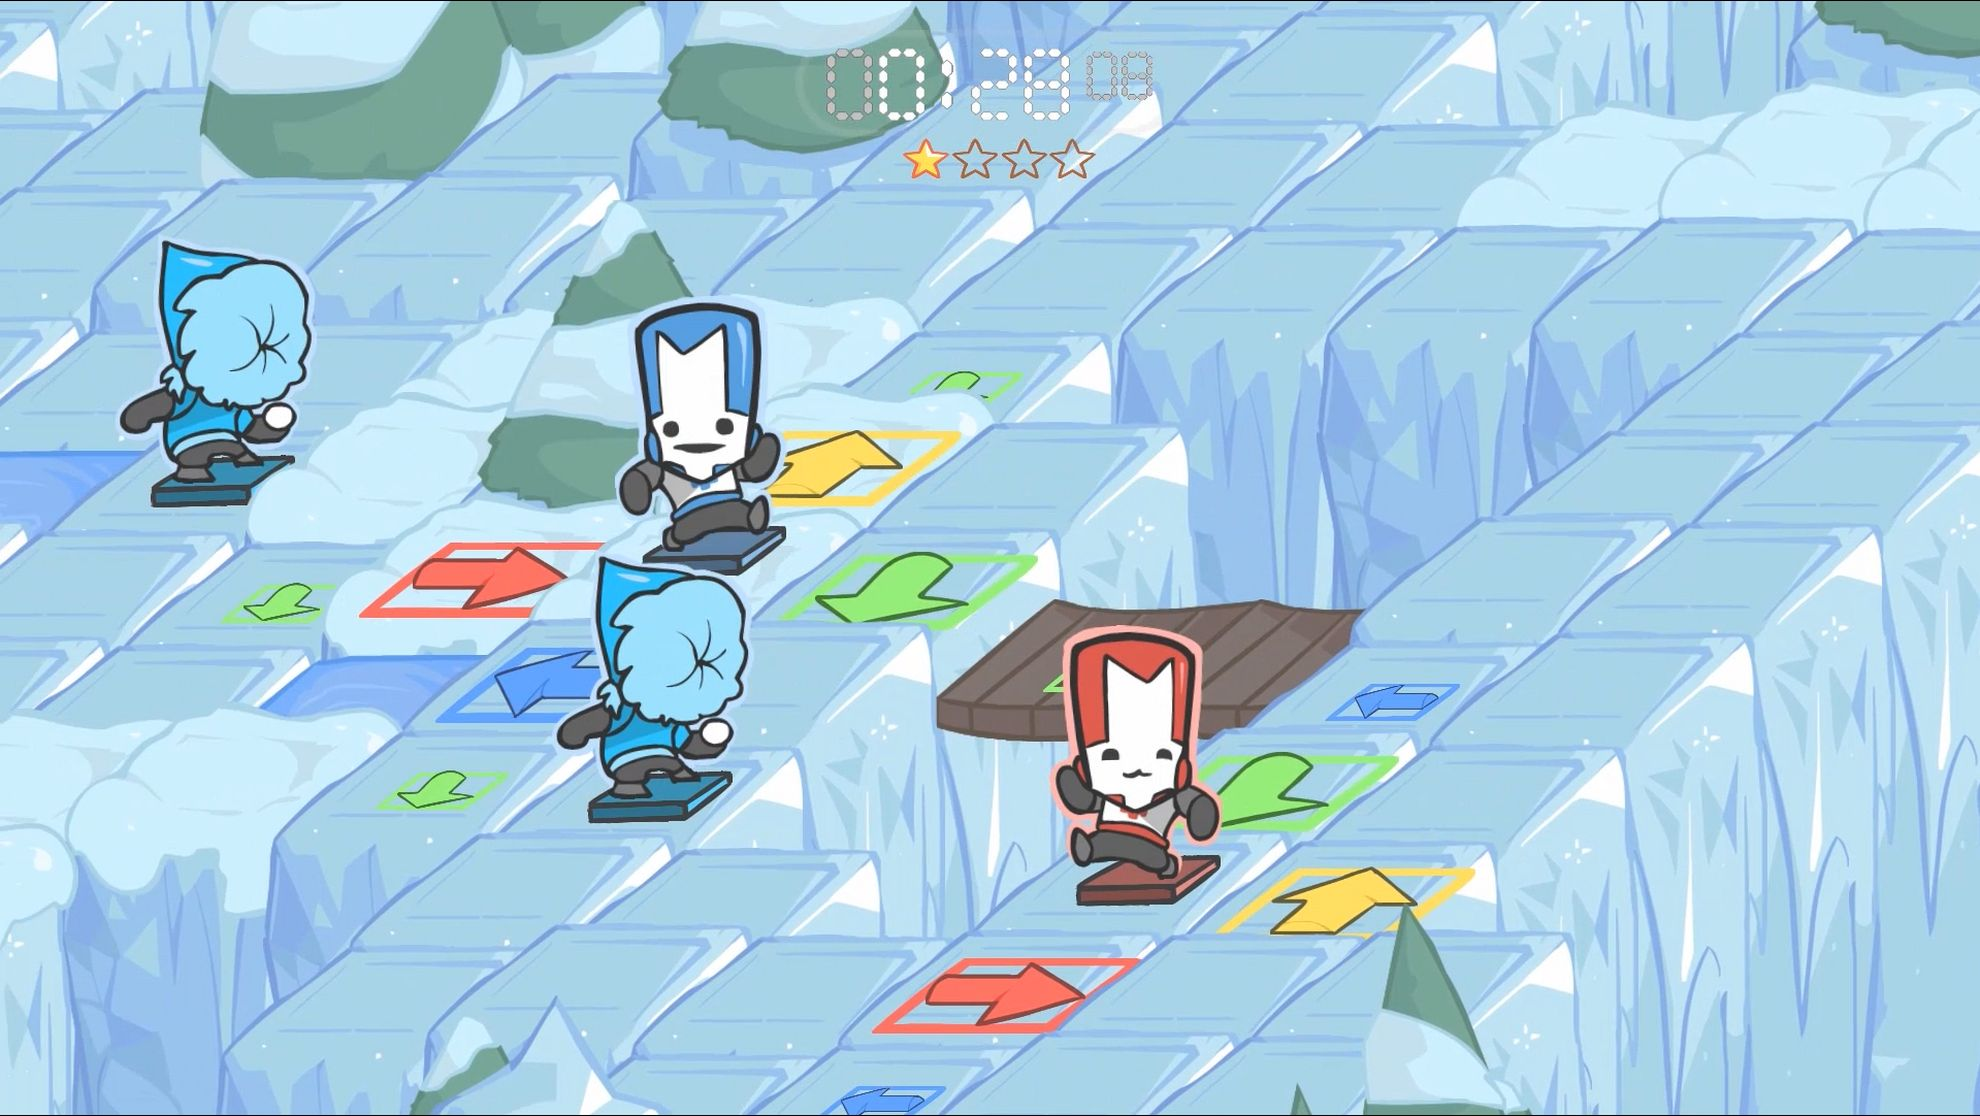 castle.crashers remastered achievement guide and roadmap